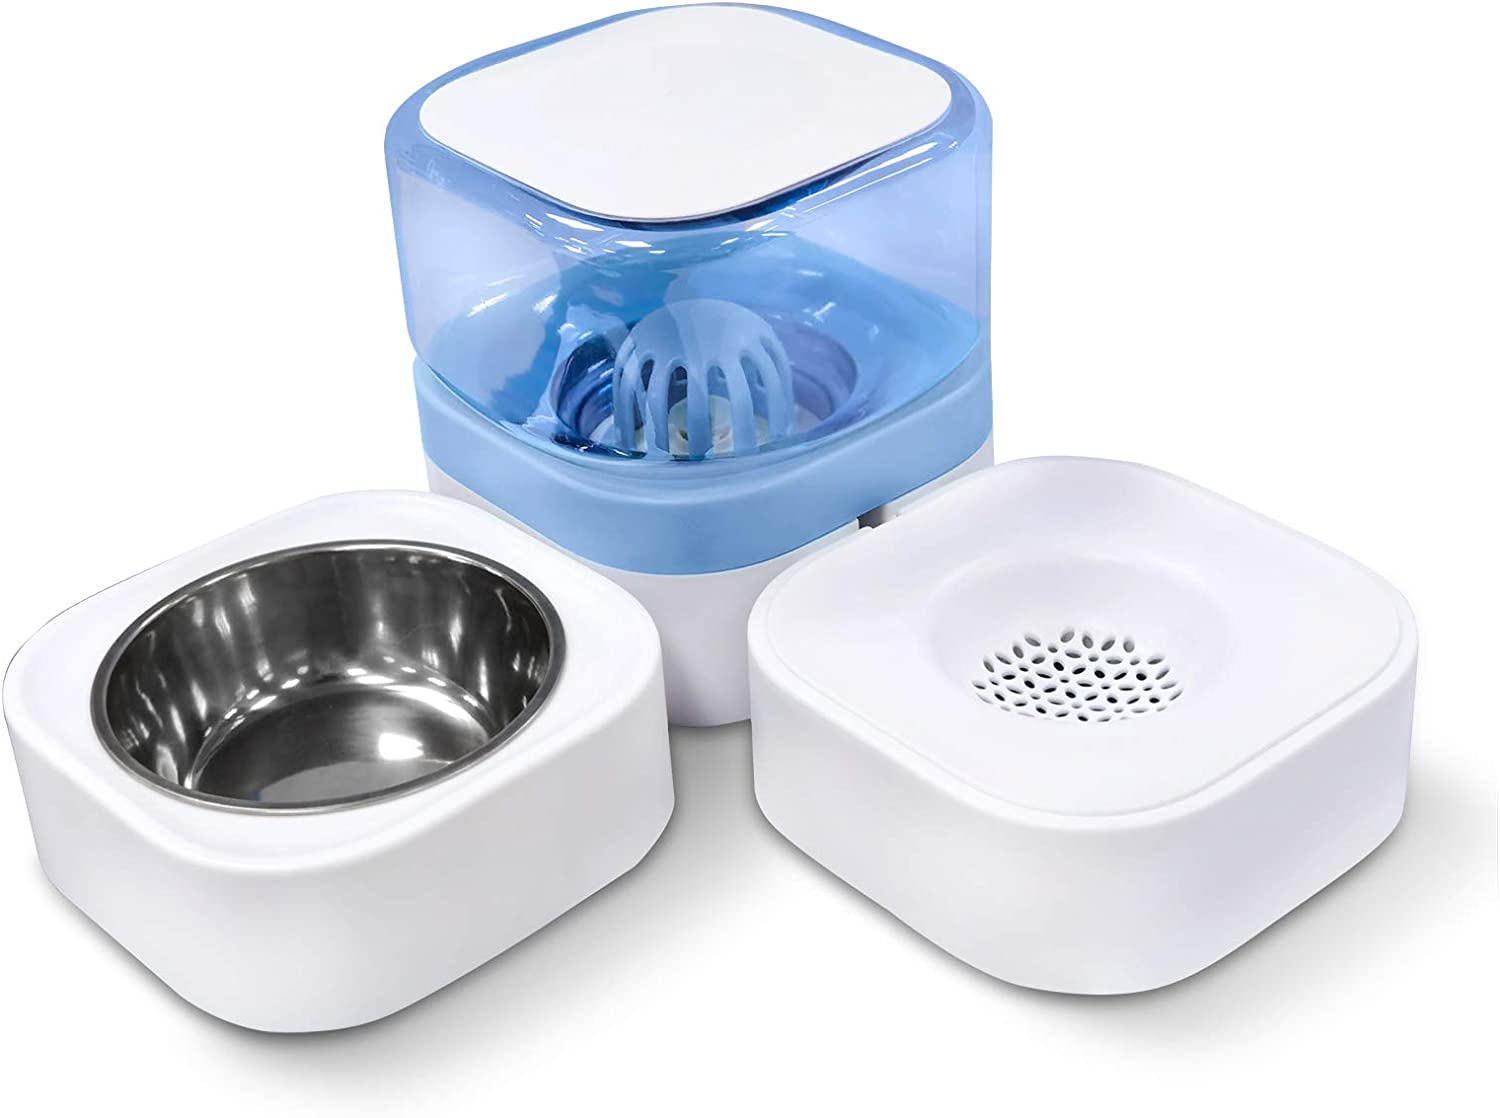 Luccalily Cat Food Bowls, Detachable Cat Dishes for Food and Water, Pet Bowls for Puppies Kitten Small Medium Dogs